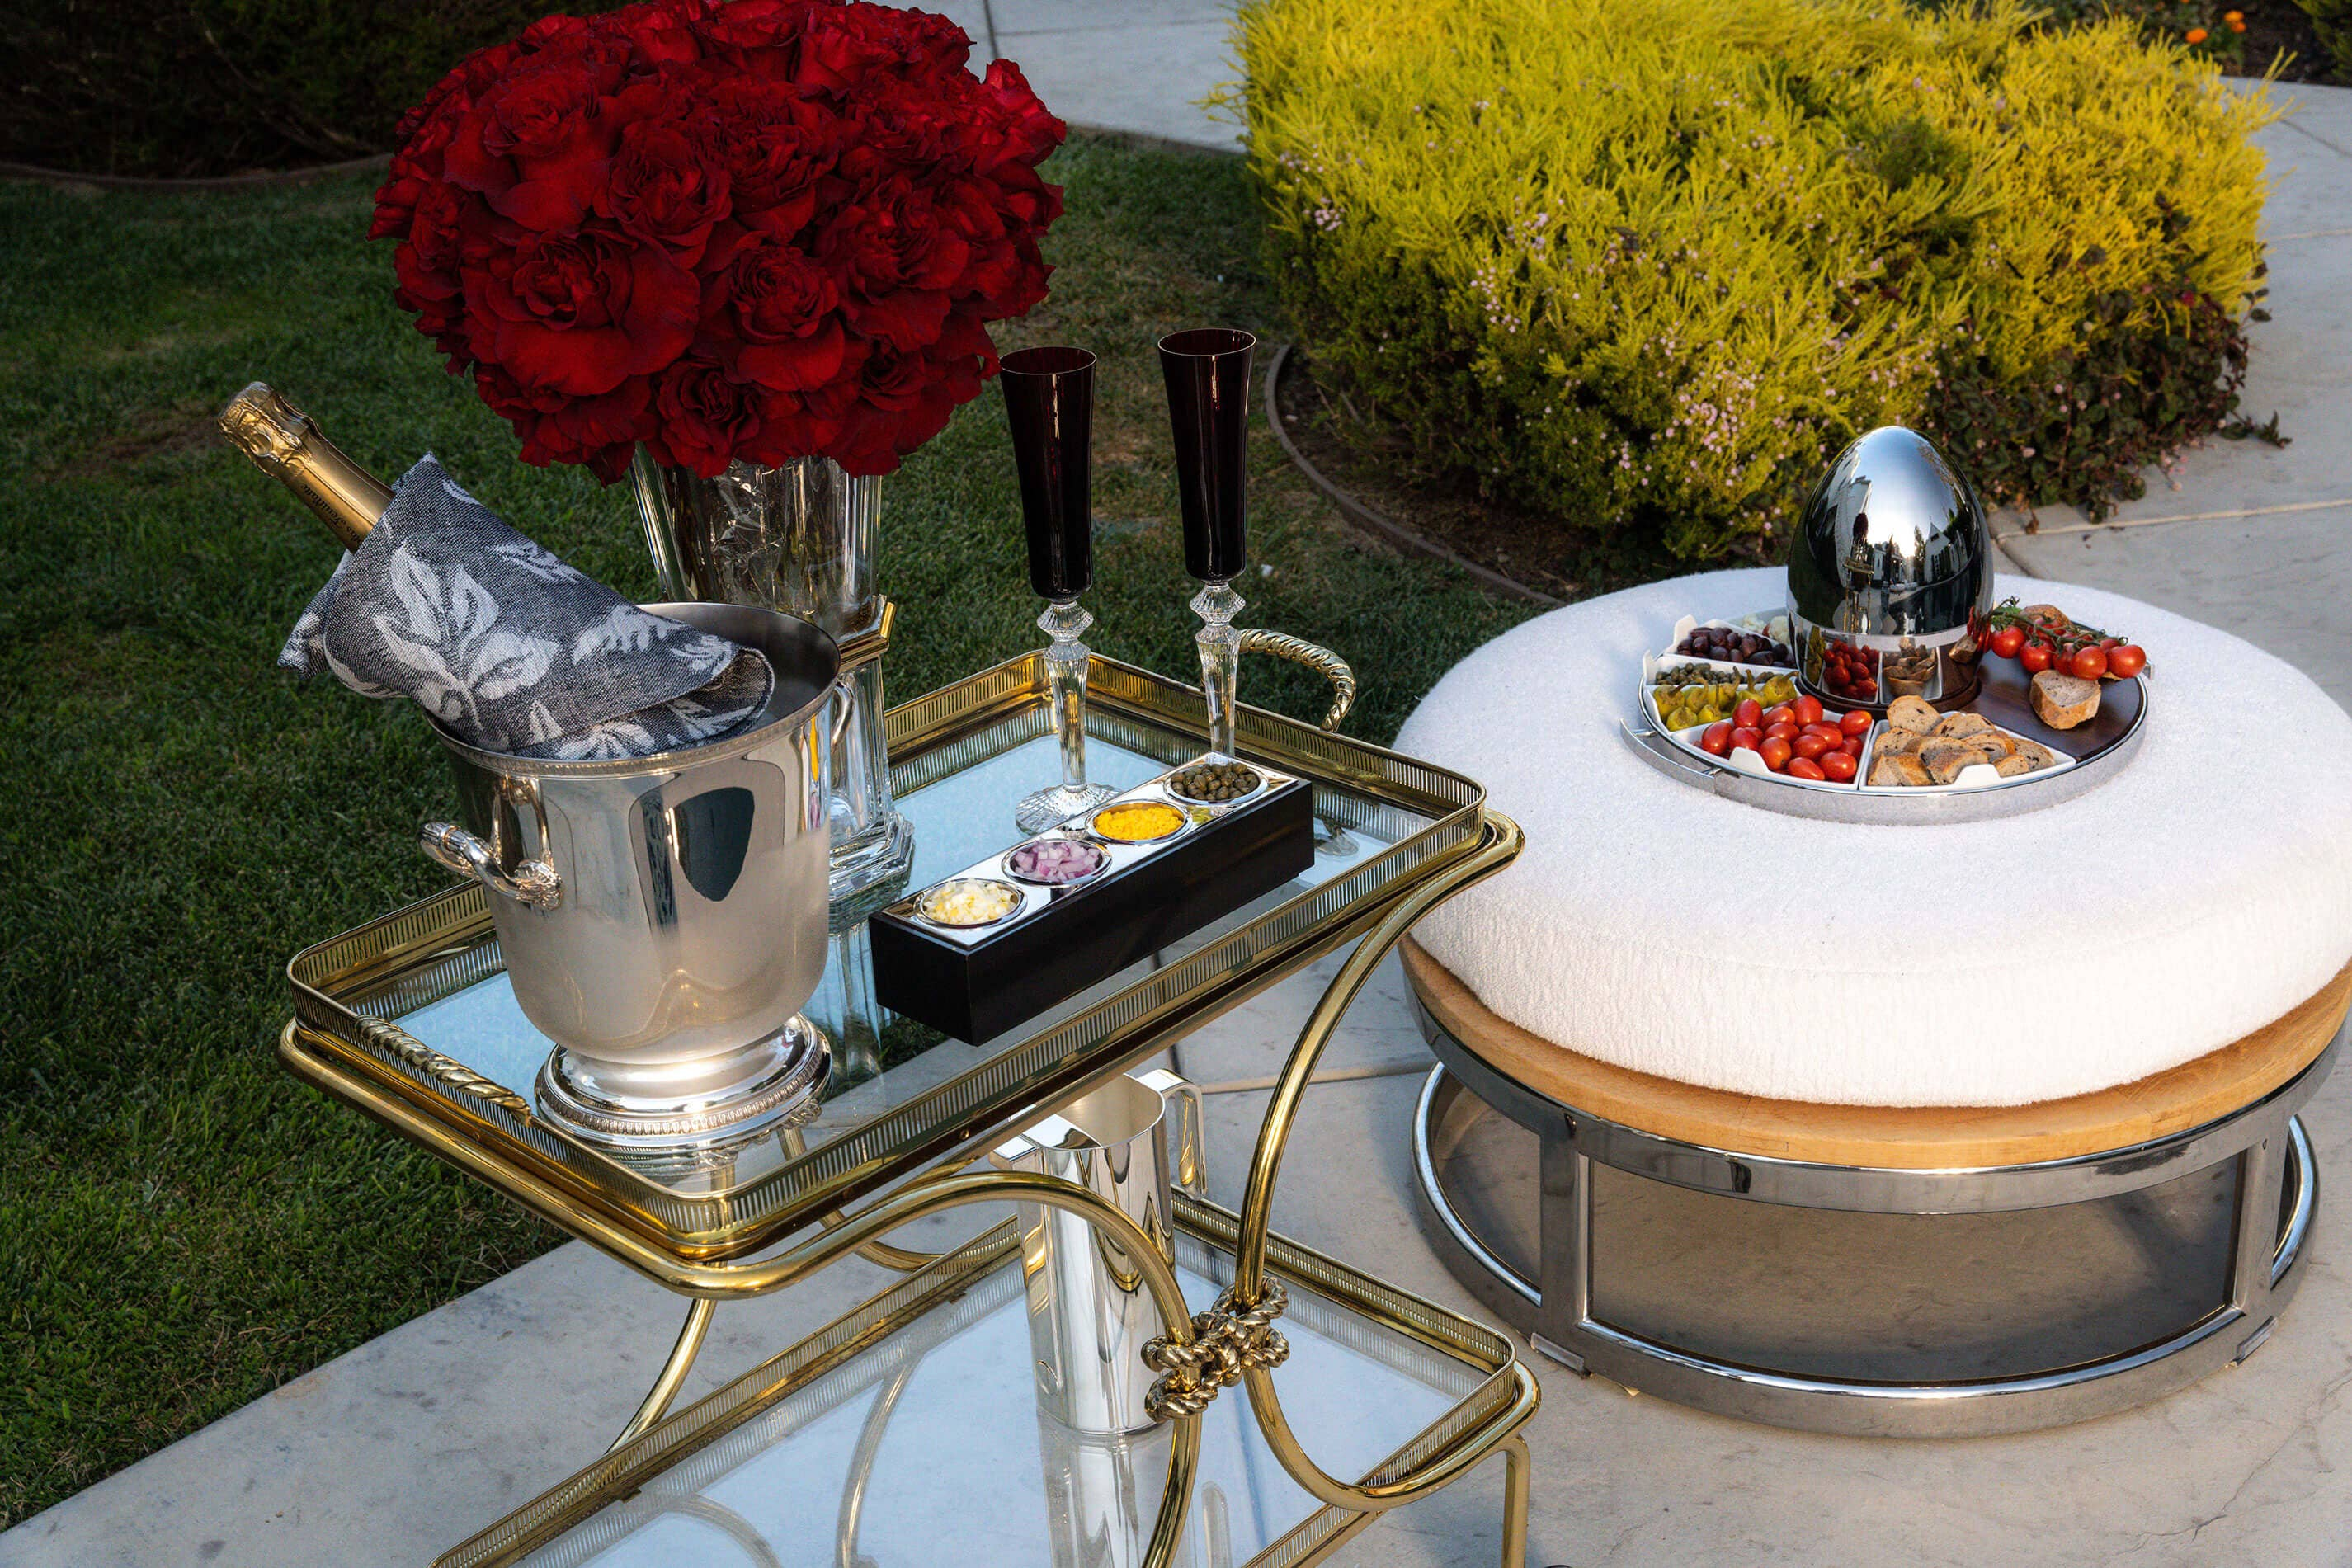 Caviar set up by the pool